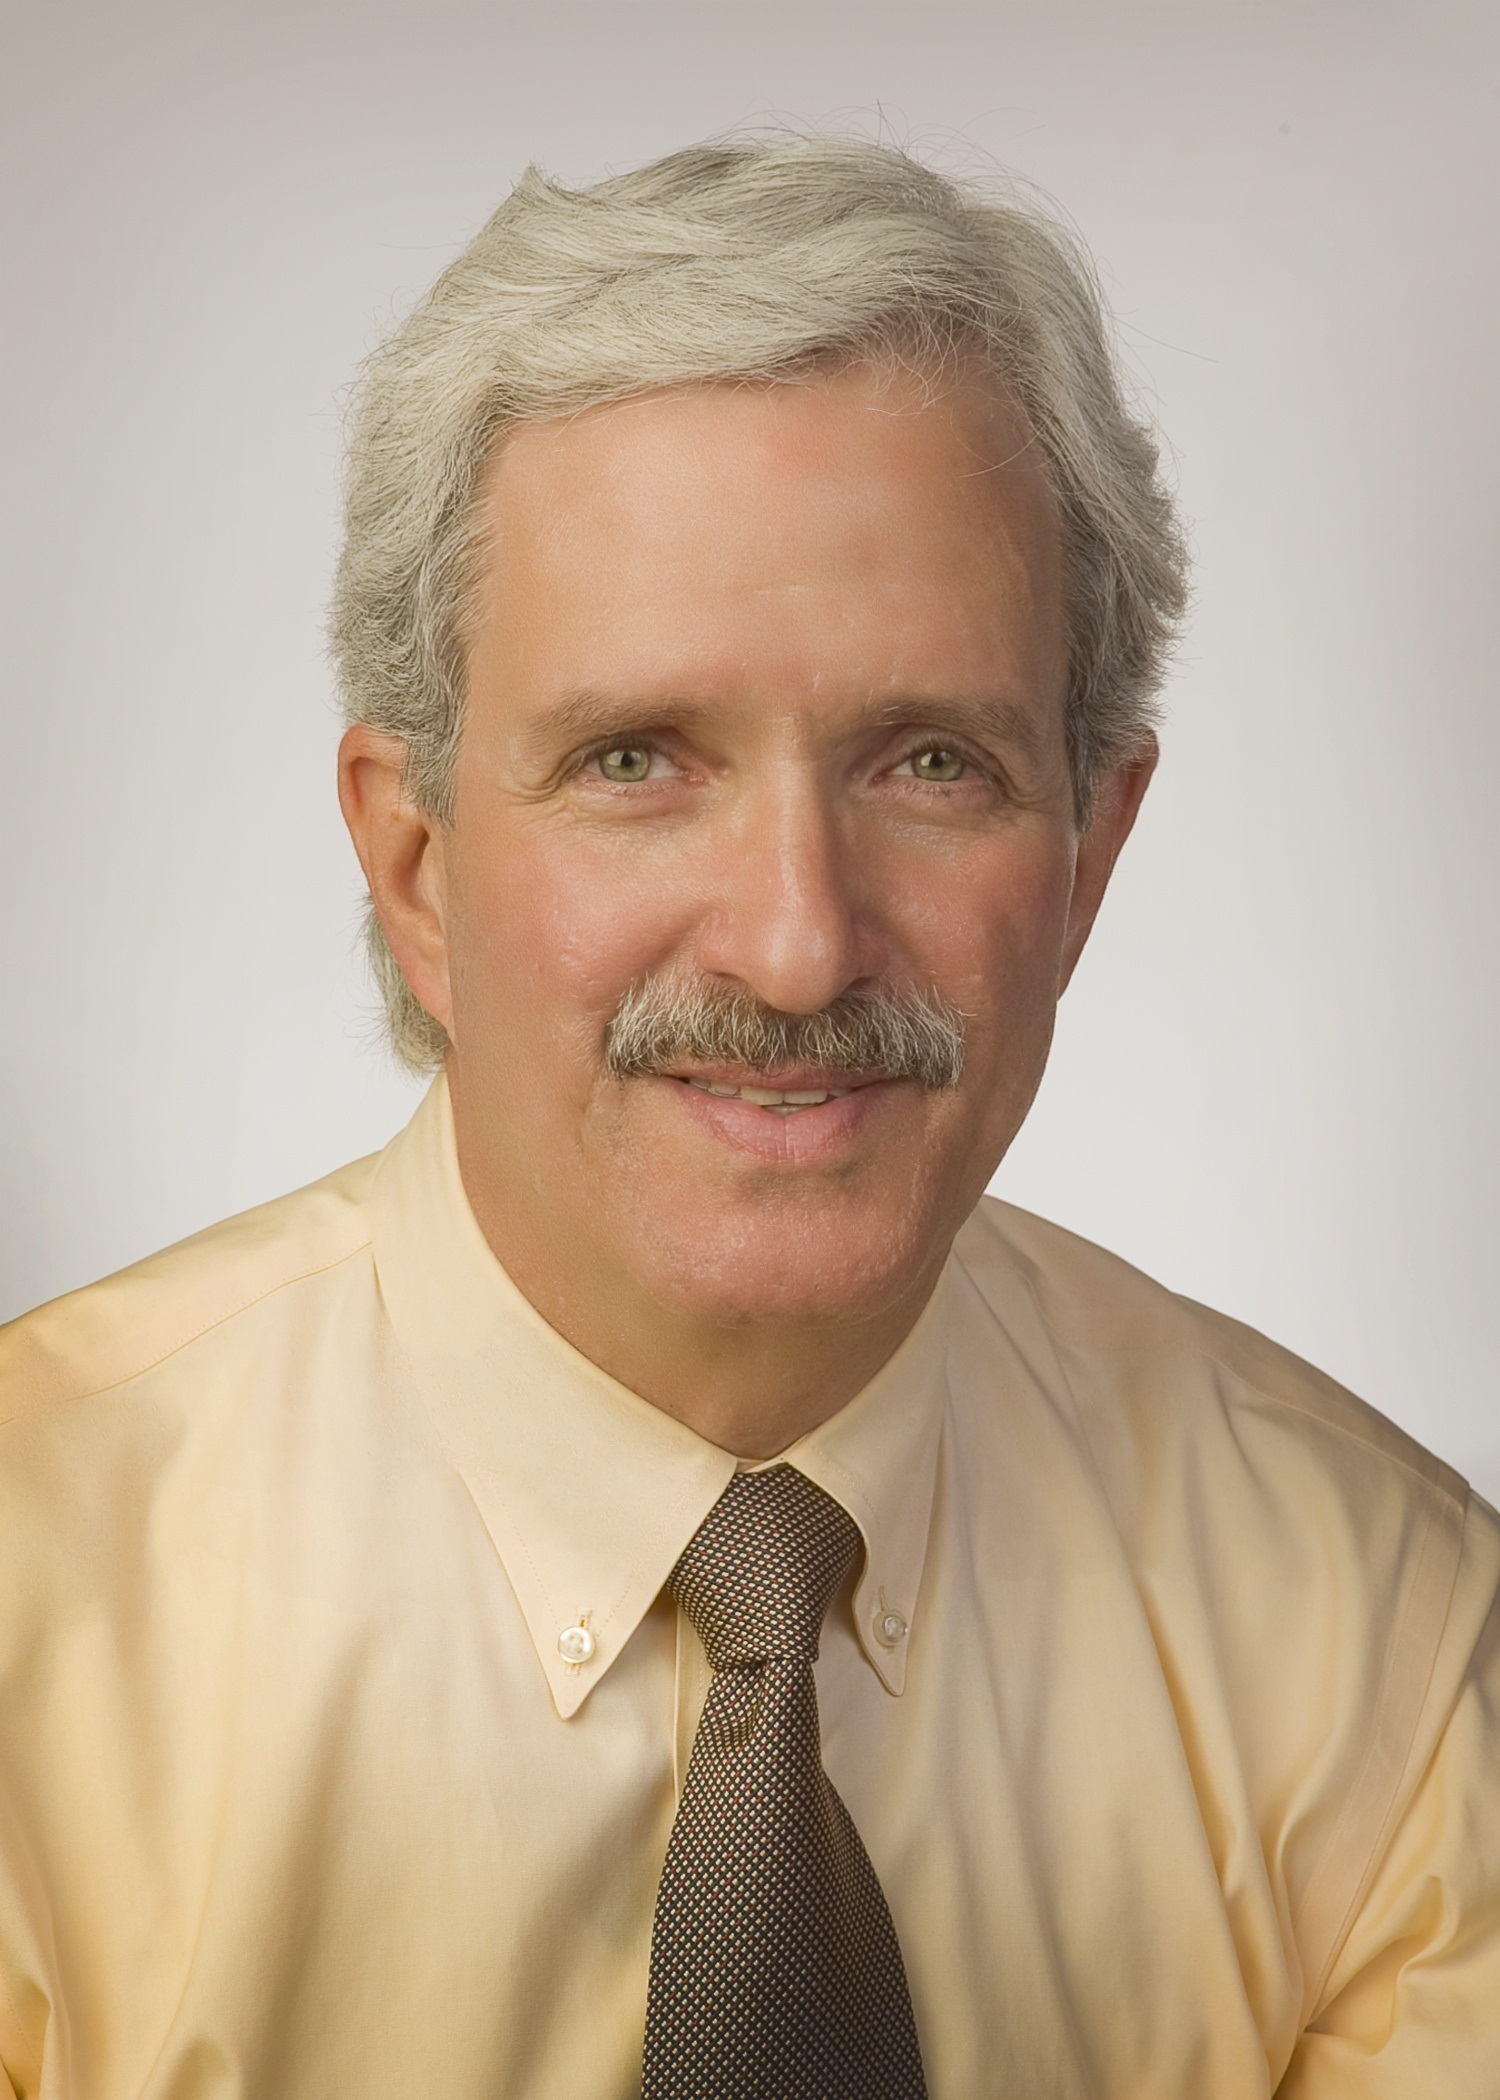 Dr. John Corbelli was elected as medical staff officer for VA Western New York Healthcare System.